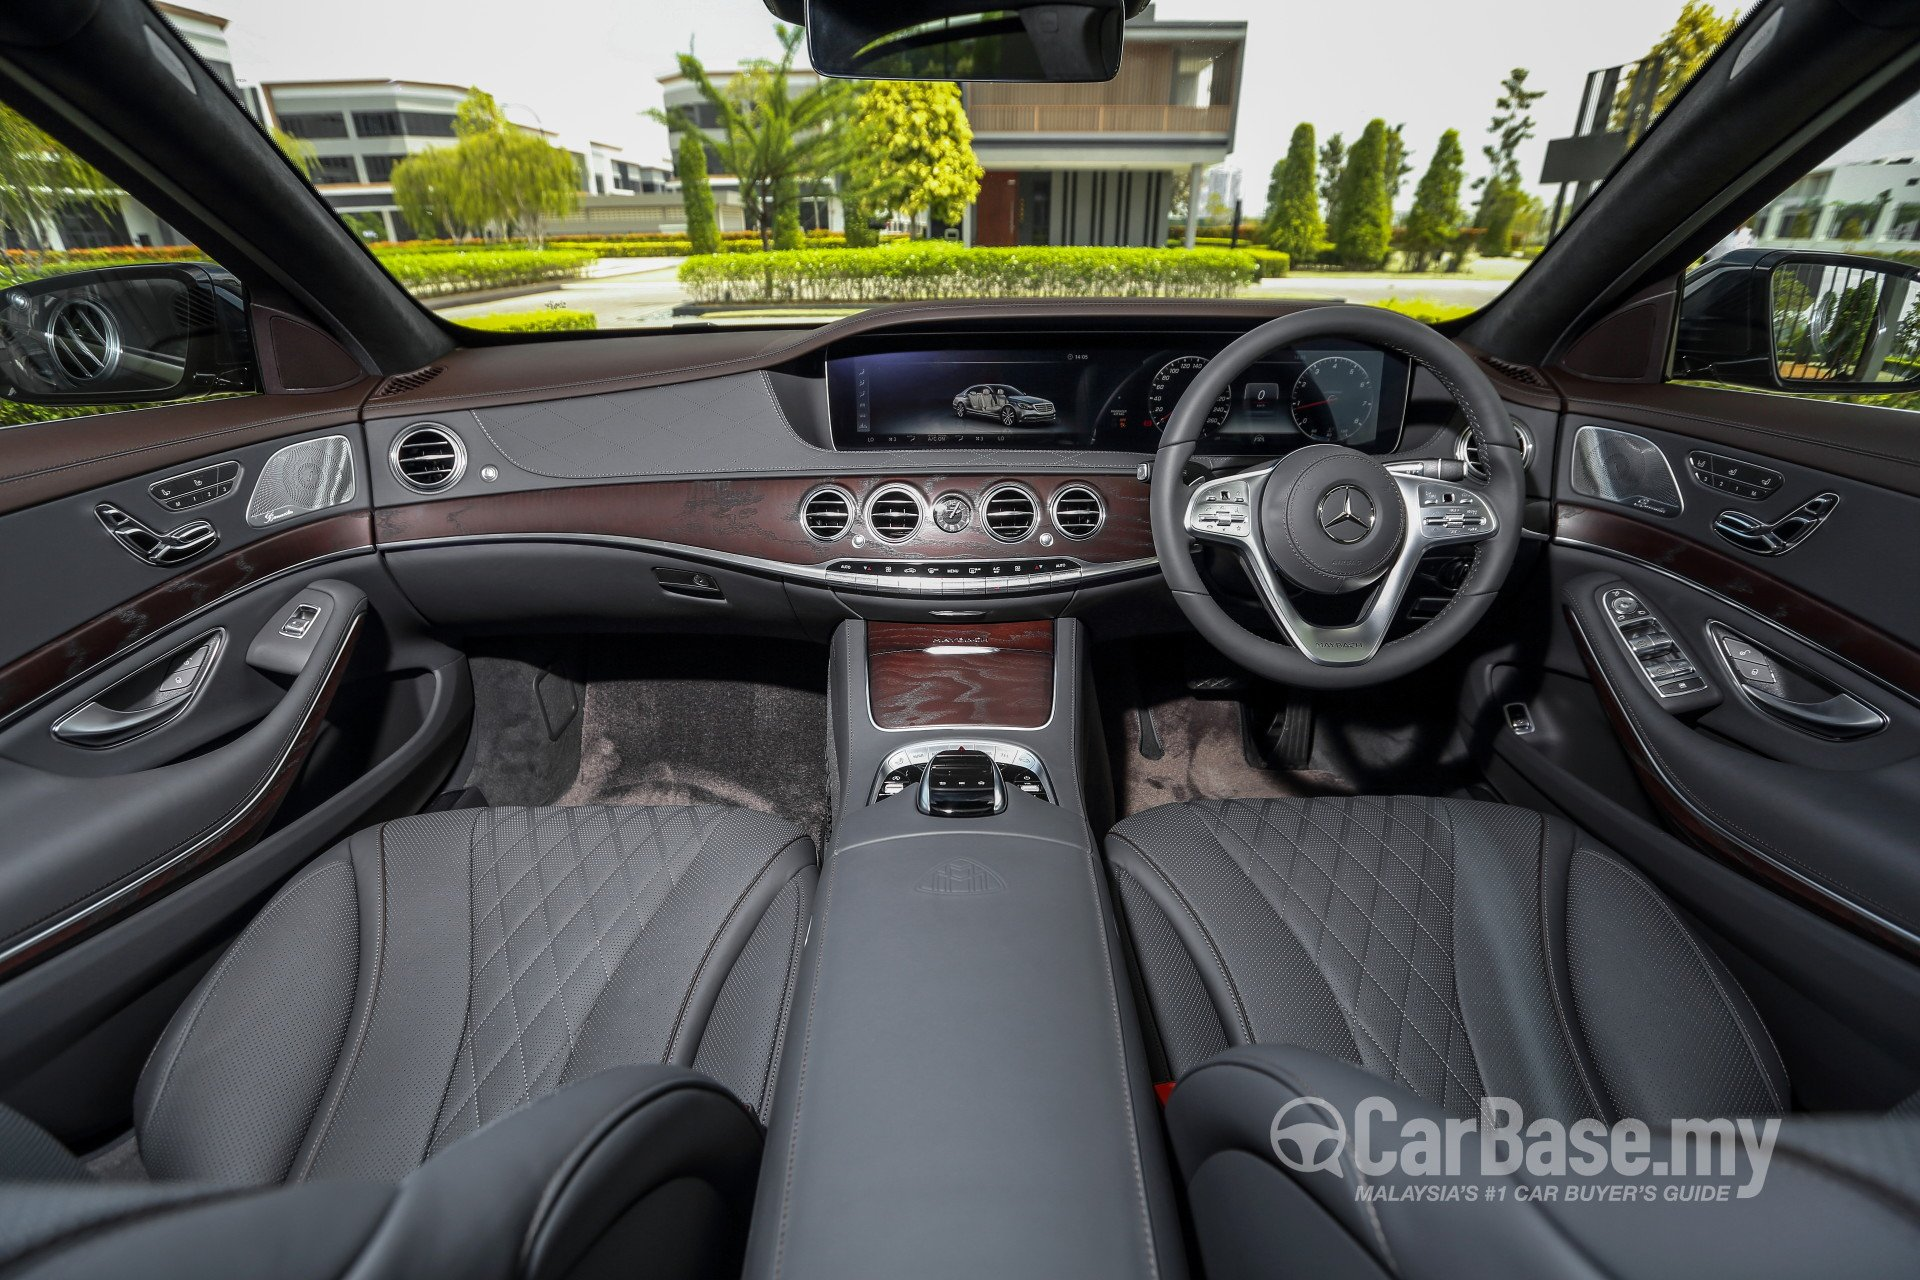 Mercedes Benz Maybach S Class X222 Facelift 2018 Interior Image In